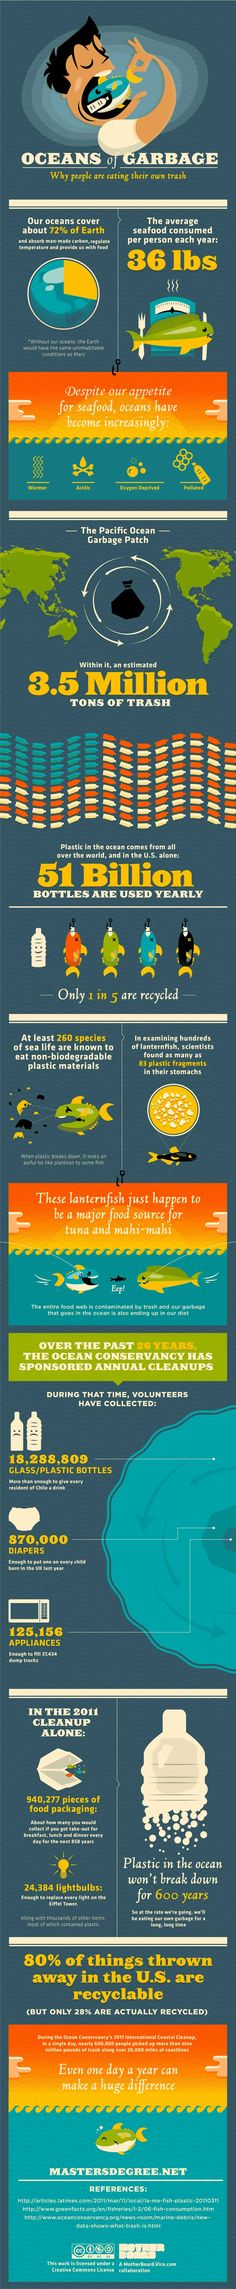 Oceans of Garbarge - Why are people eating their own trash Infographic